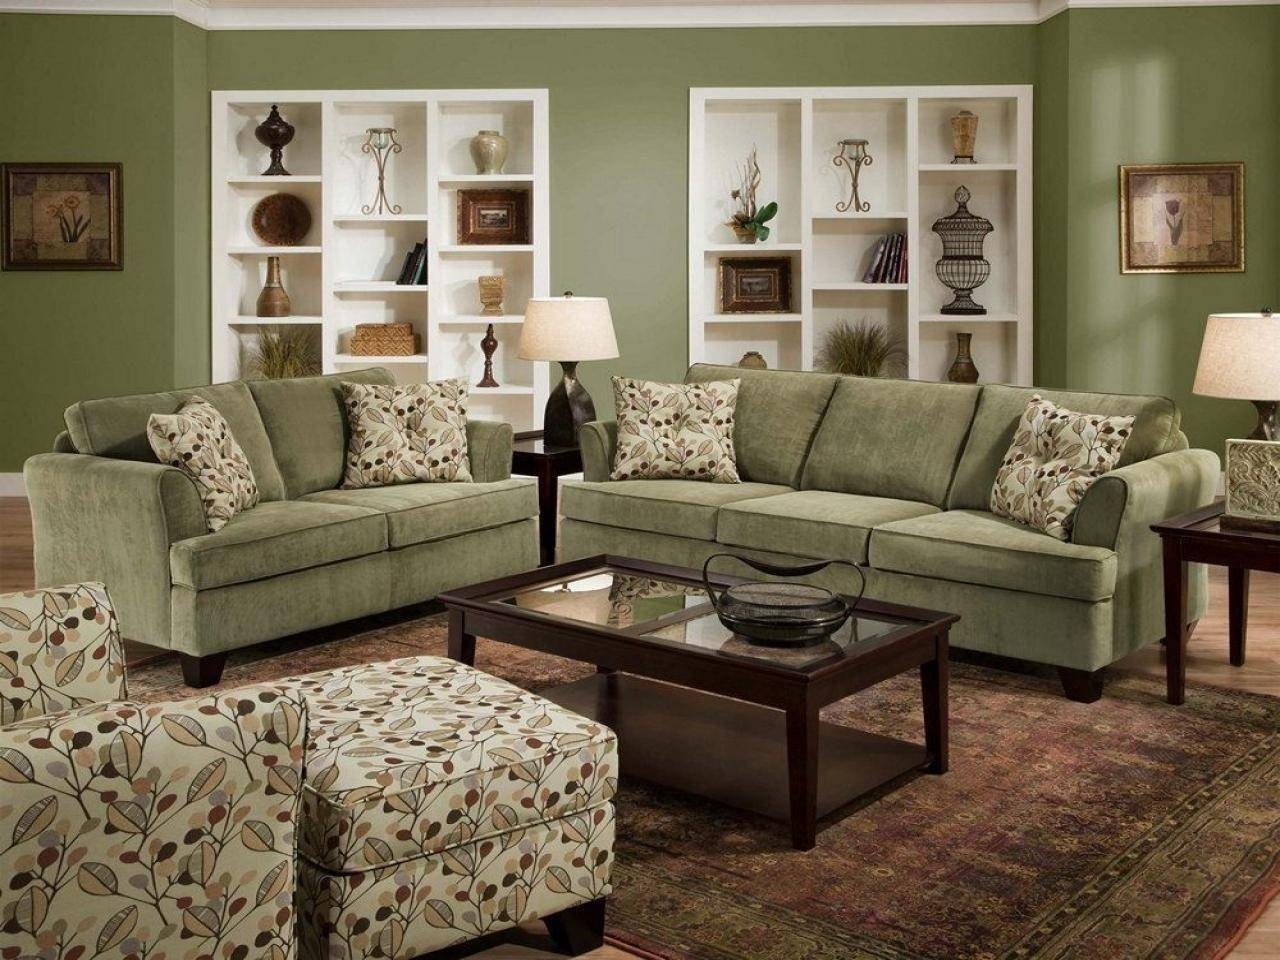 20+ Choices Of Simmons Microfiber Sofas | Sofa Ideas in Simmons Microfiber Sofas (Image 1 of 15)